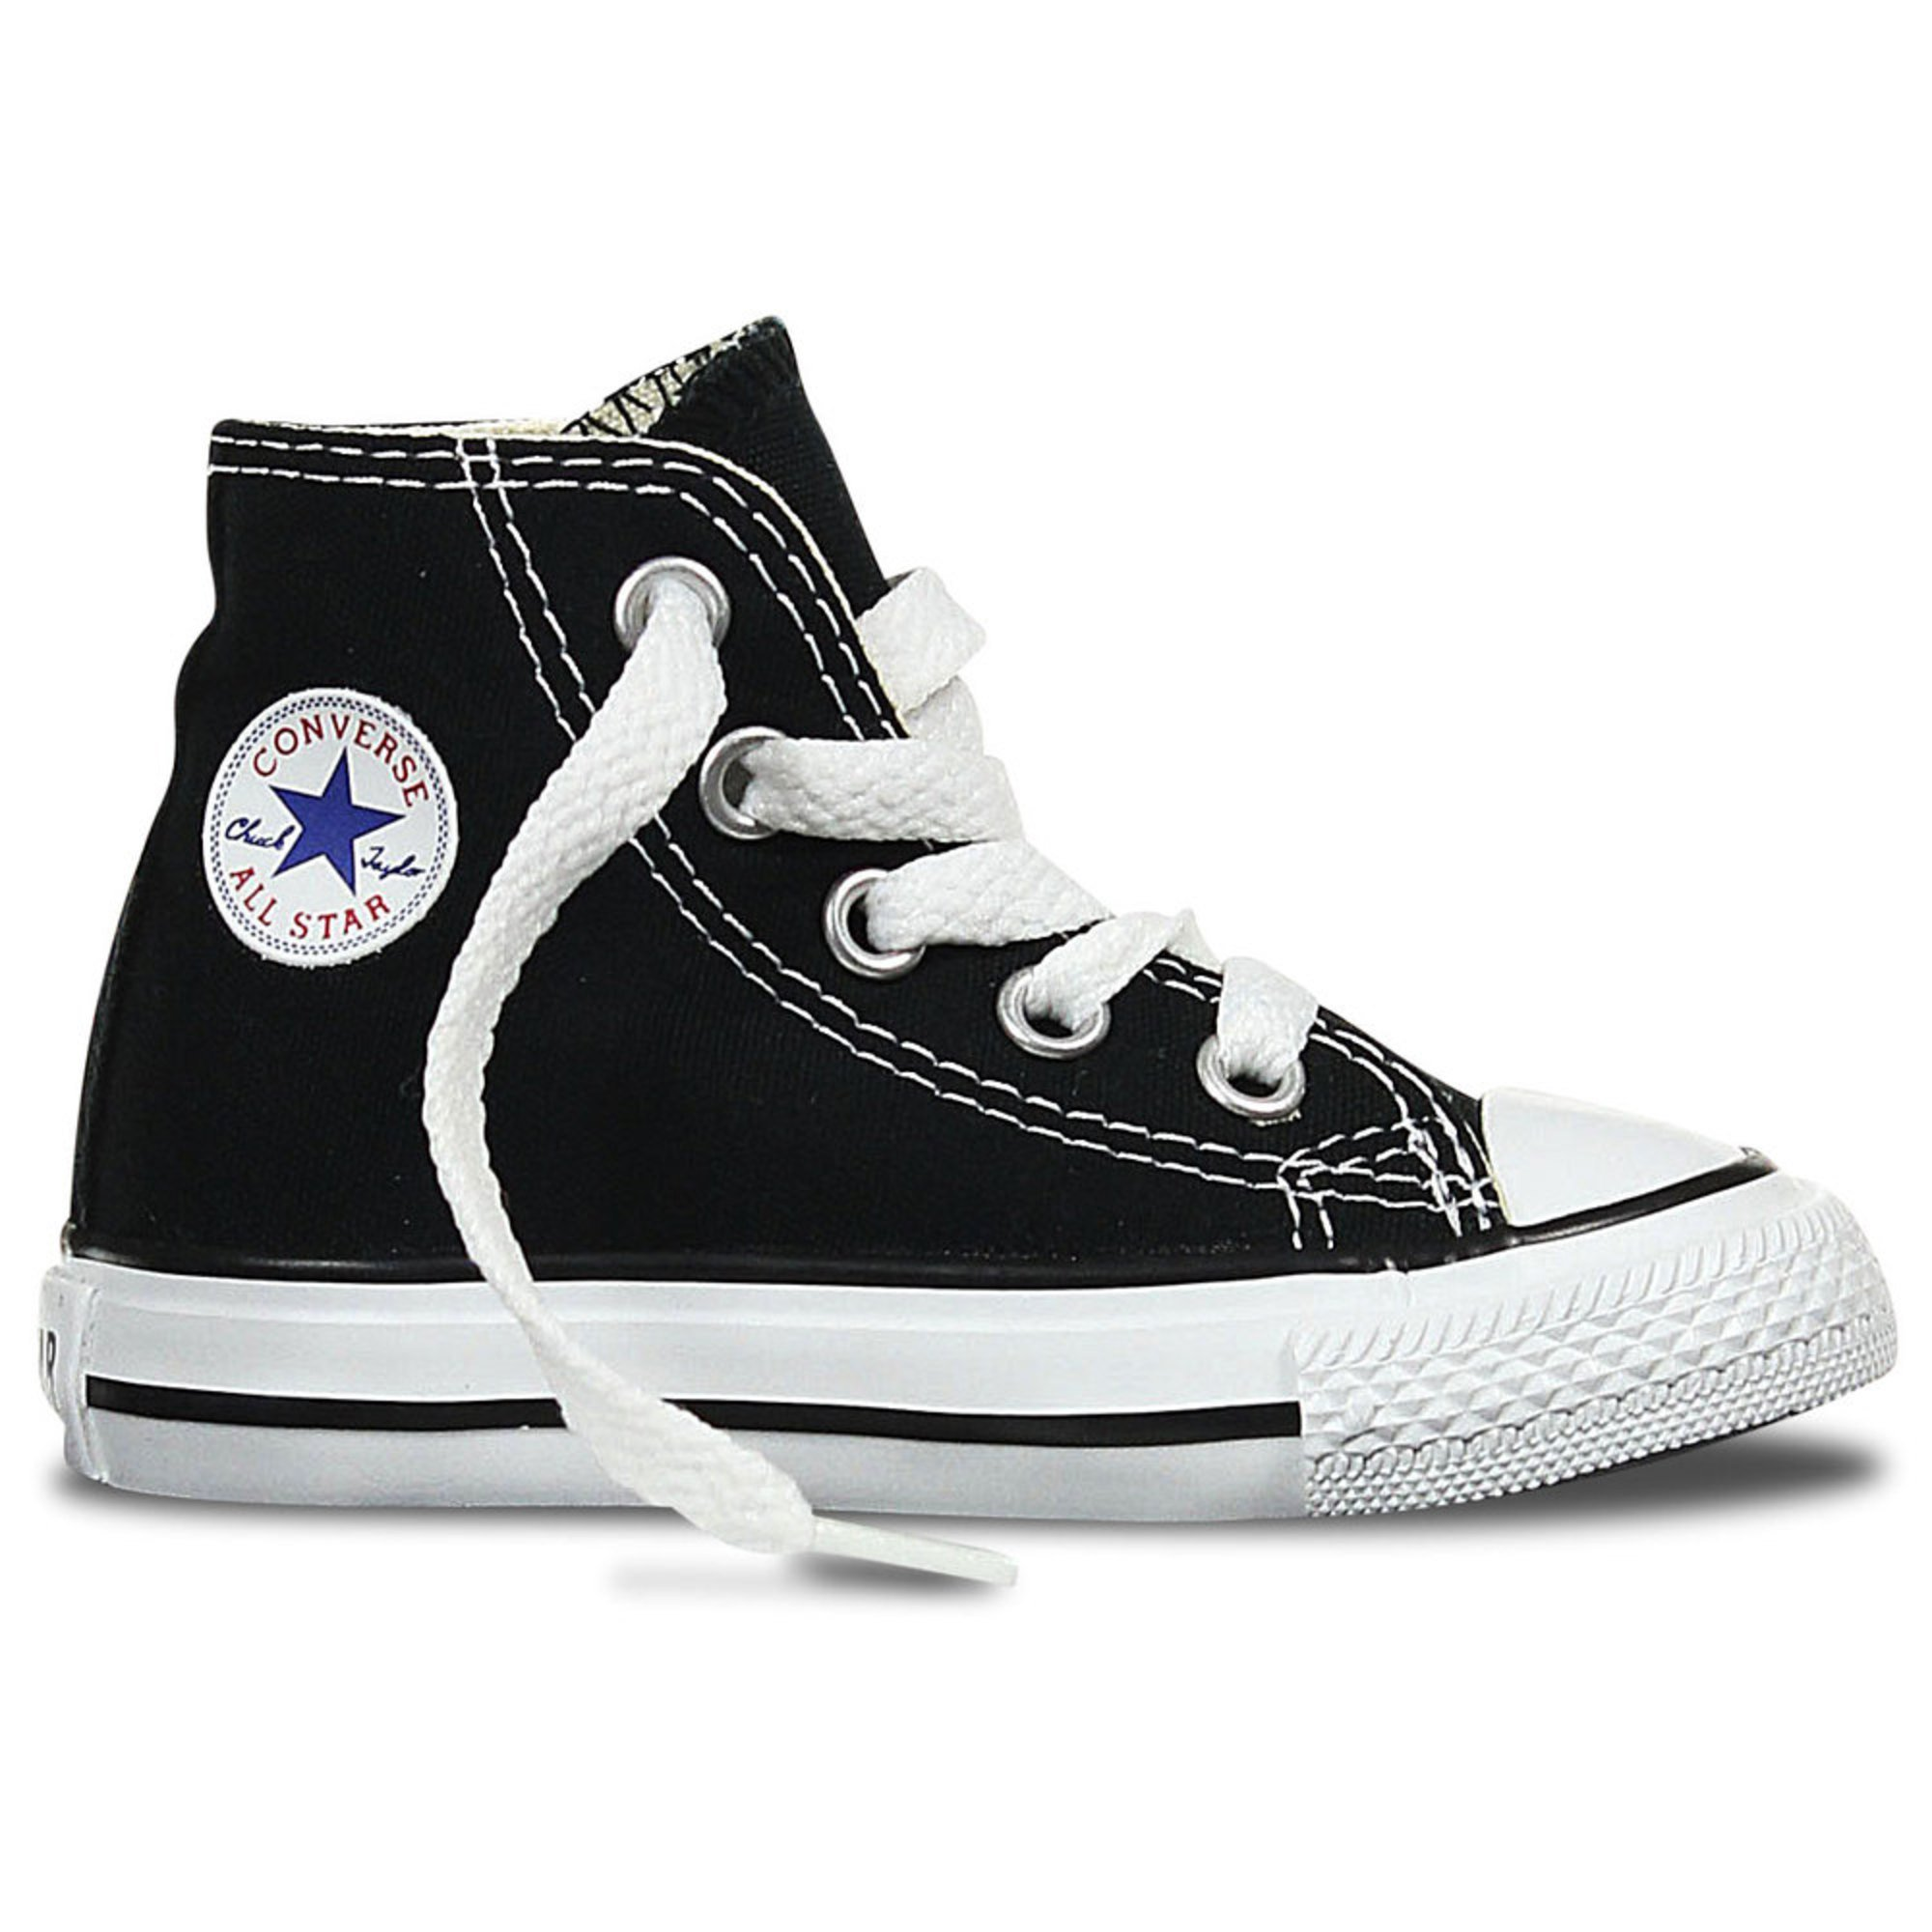 6528ca819cd Converse. Converse Boys Chuck Taylor All Star Hi Top Basketball Shoe ...